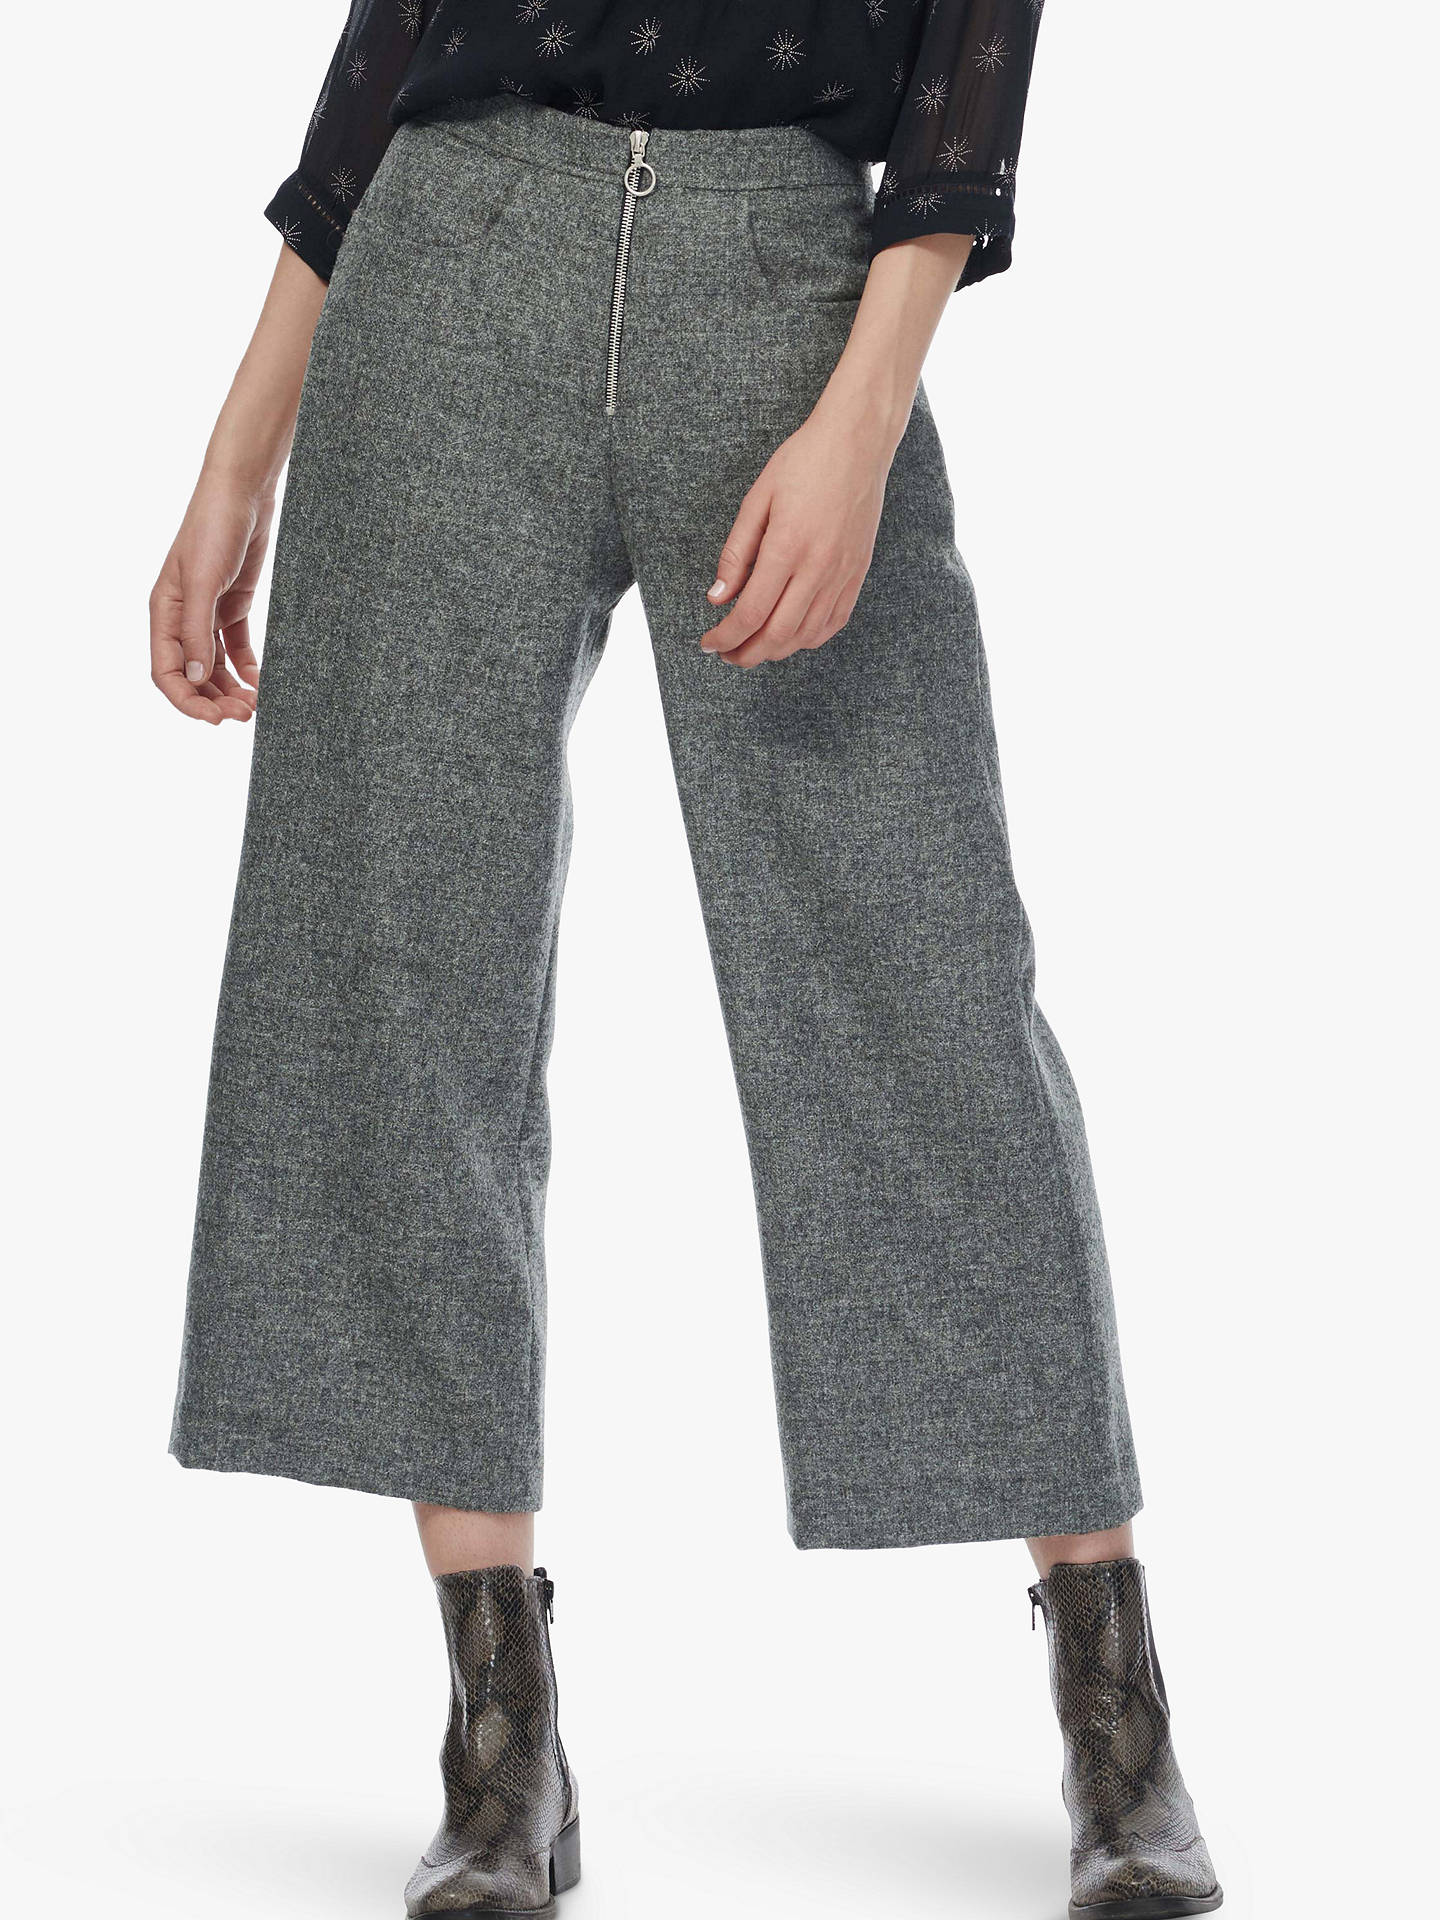 BuyBrora Tweed Woven Wool Trousers, Steel, 16 Online at johnlewis.com